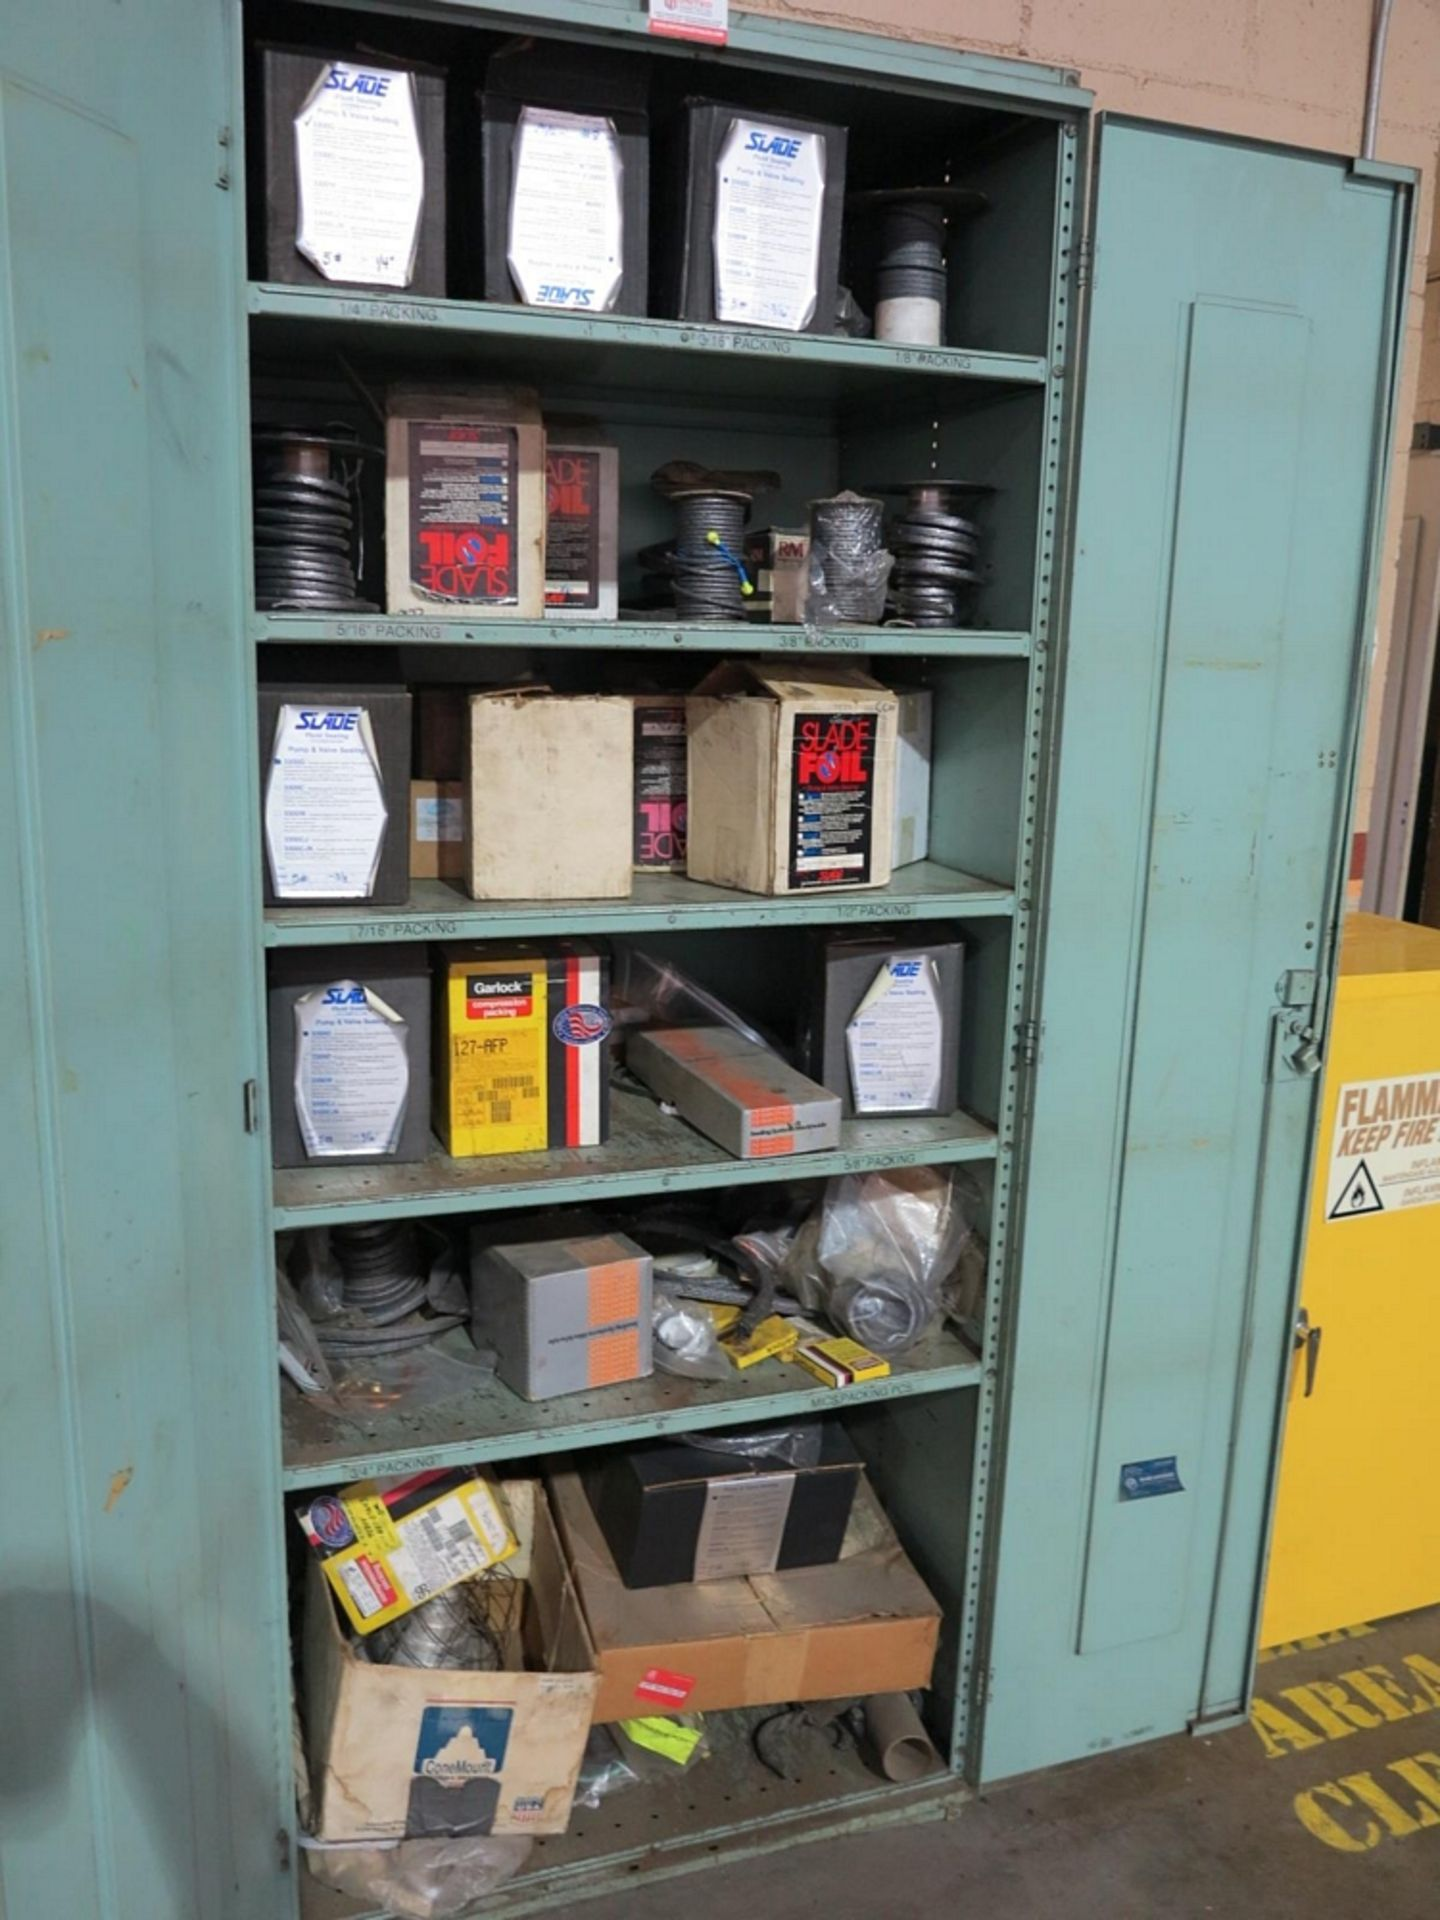 Lot 45 - 2-DOOR STORAGE CABINET W/ CONTENTS OF PUMP AND VALVE SEALING, COMPRESSION PACKING, ETC.